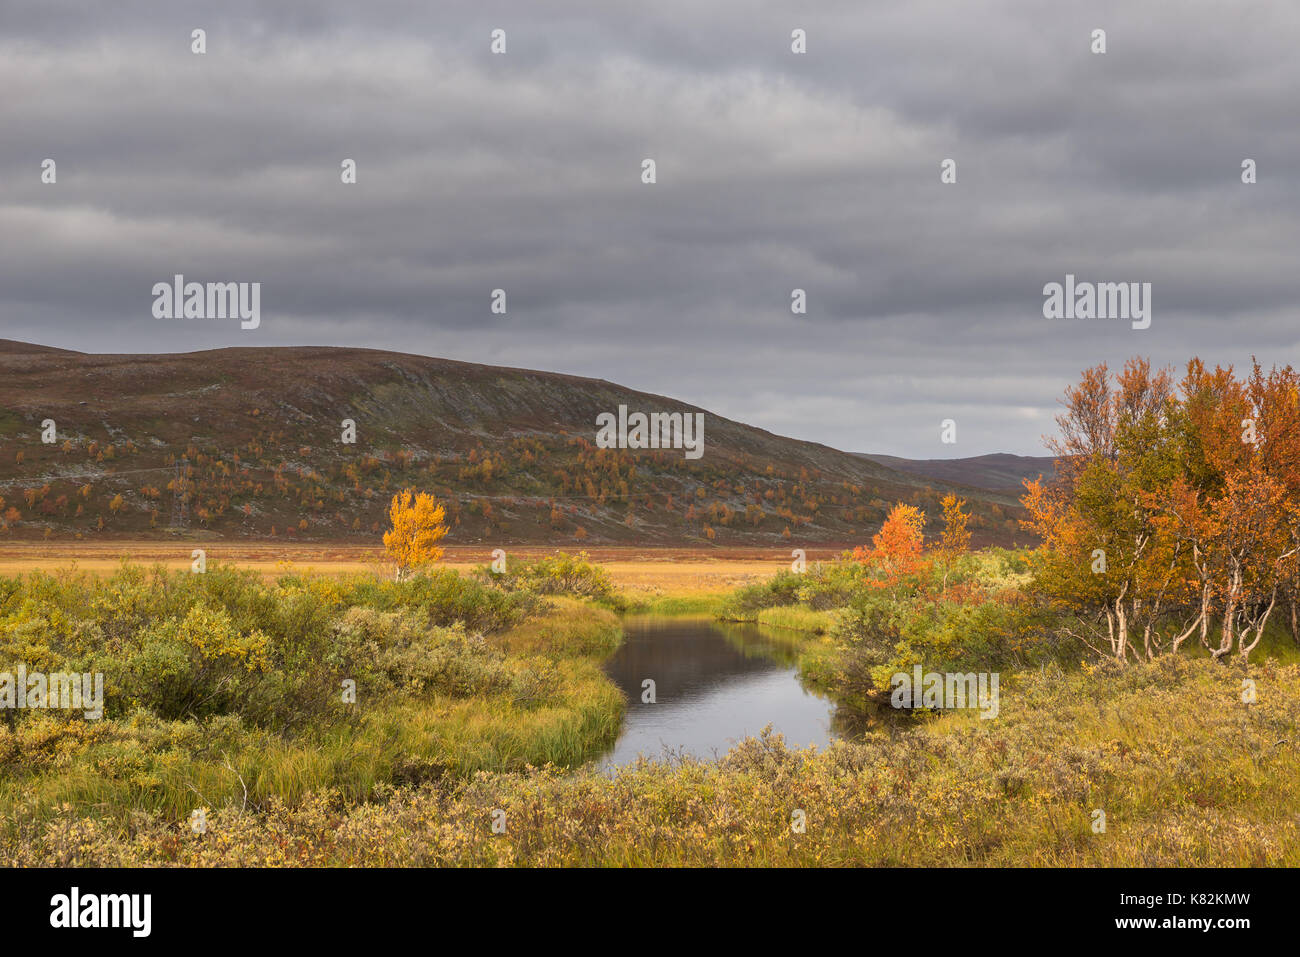 Autumn at the mountain in Finnmark, Norway with small river - Stock Image